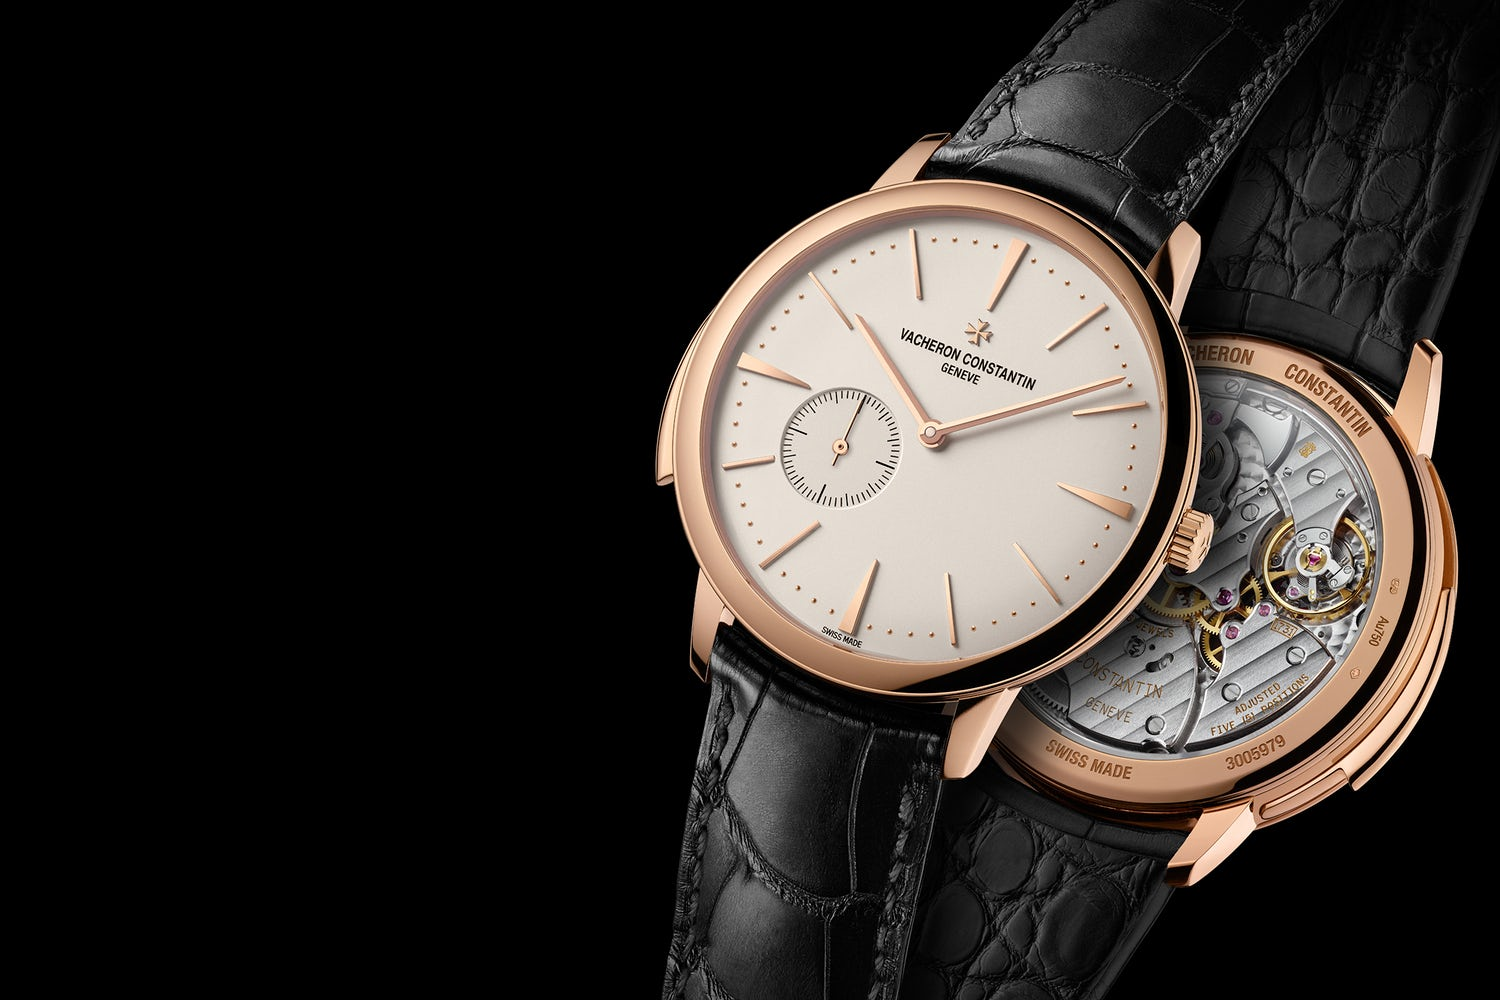 Vacheron Constantin Patrimony Contemporaine Calibre 1731 Minute Repeater